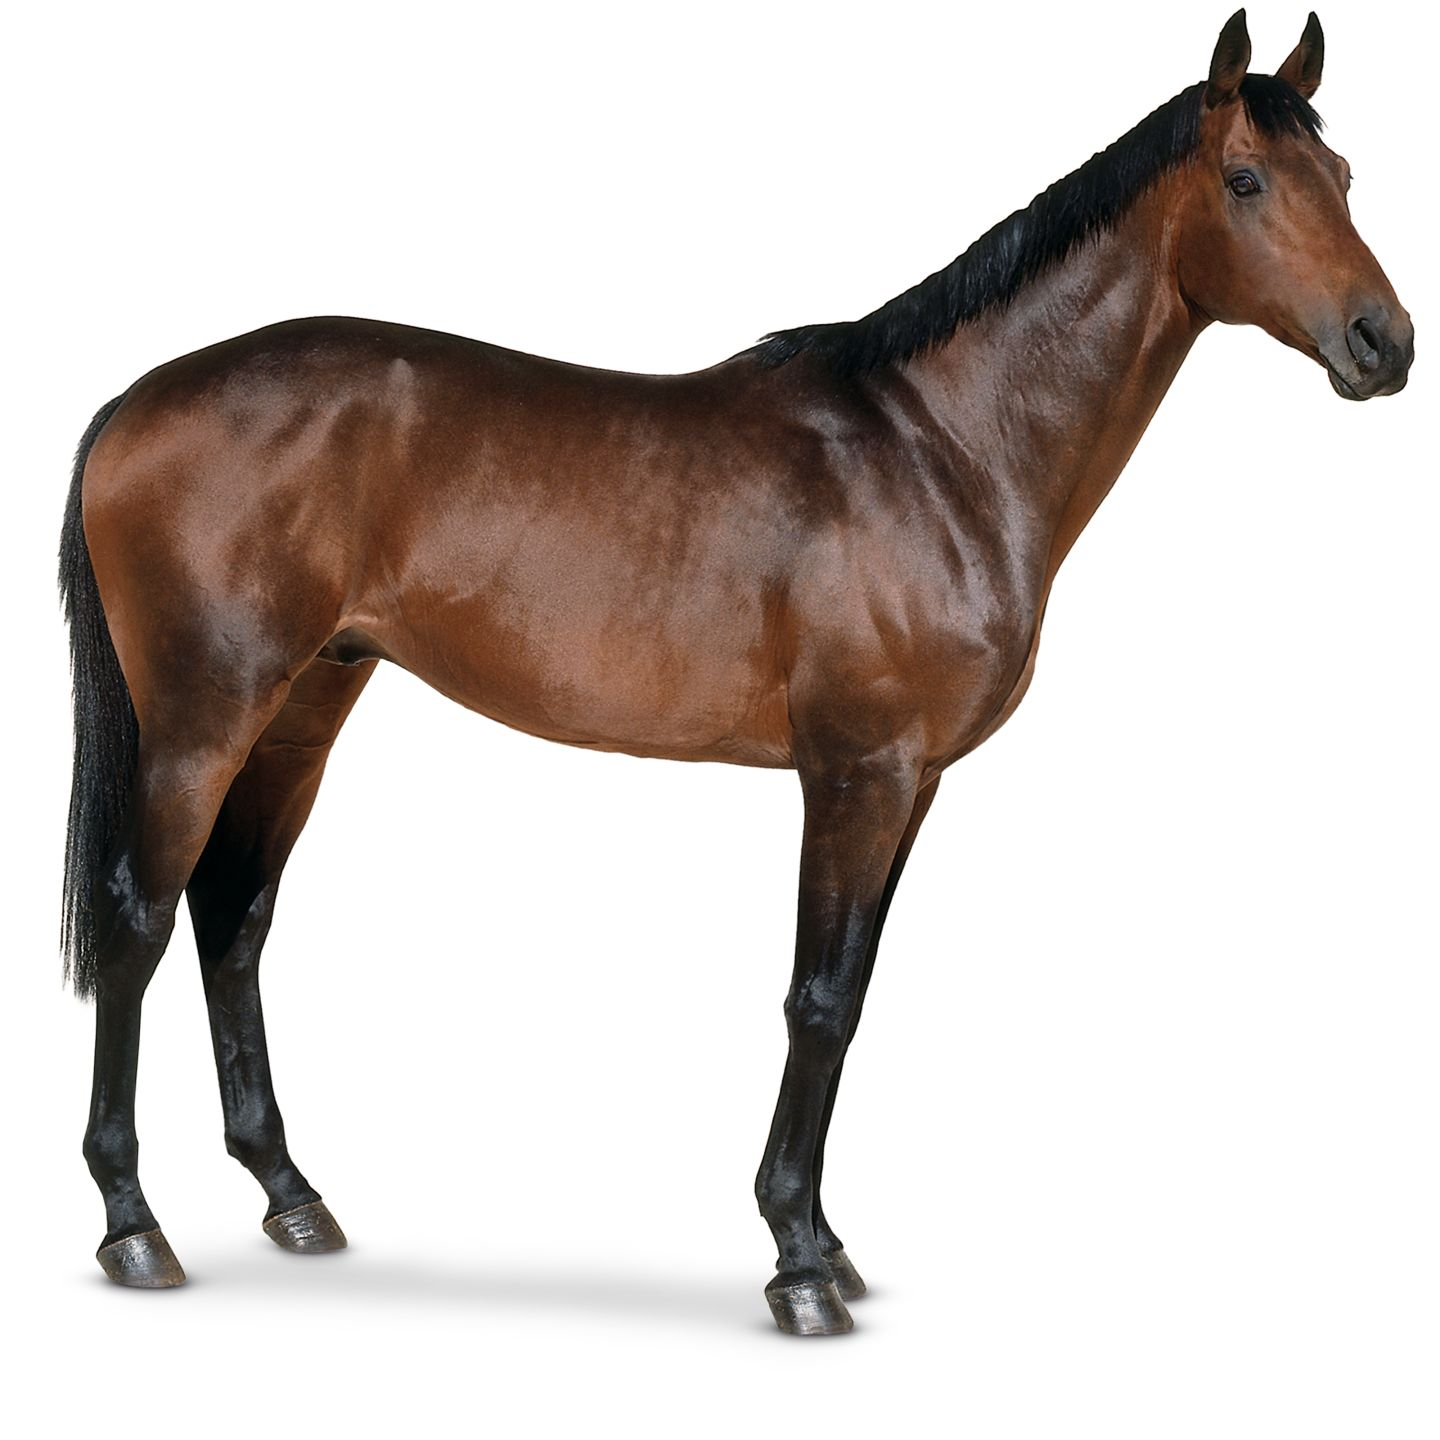 Brown Horse Type 392.28 Kb